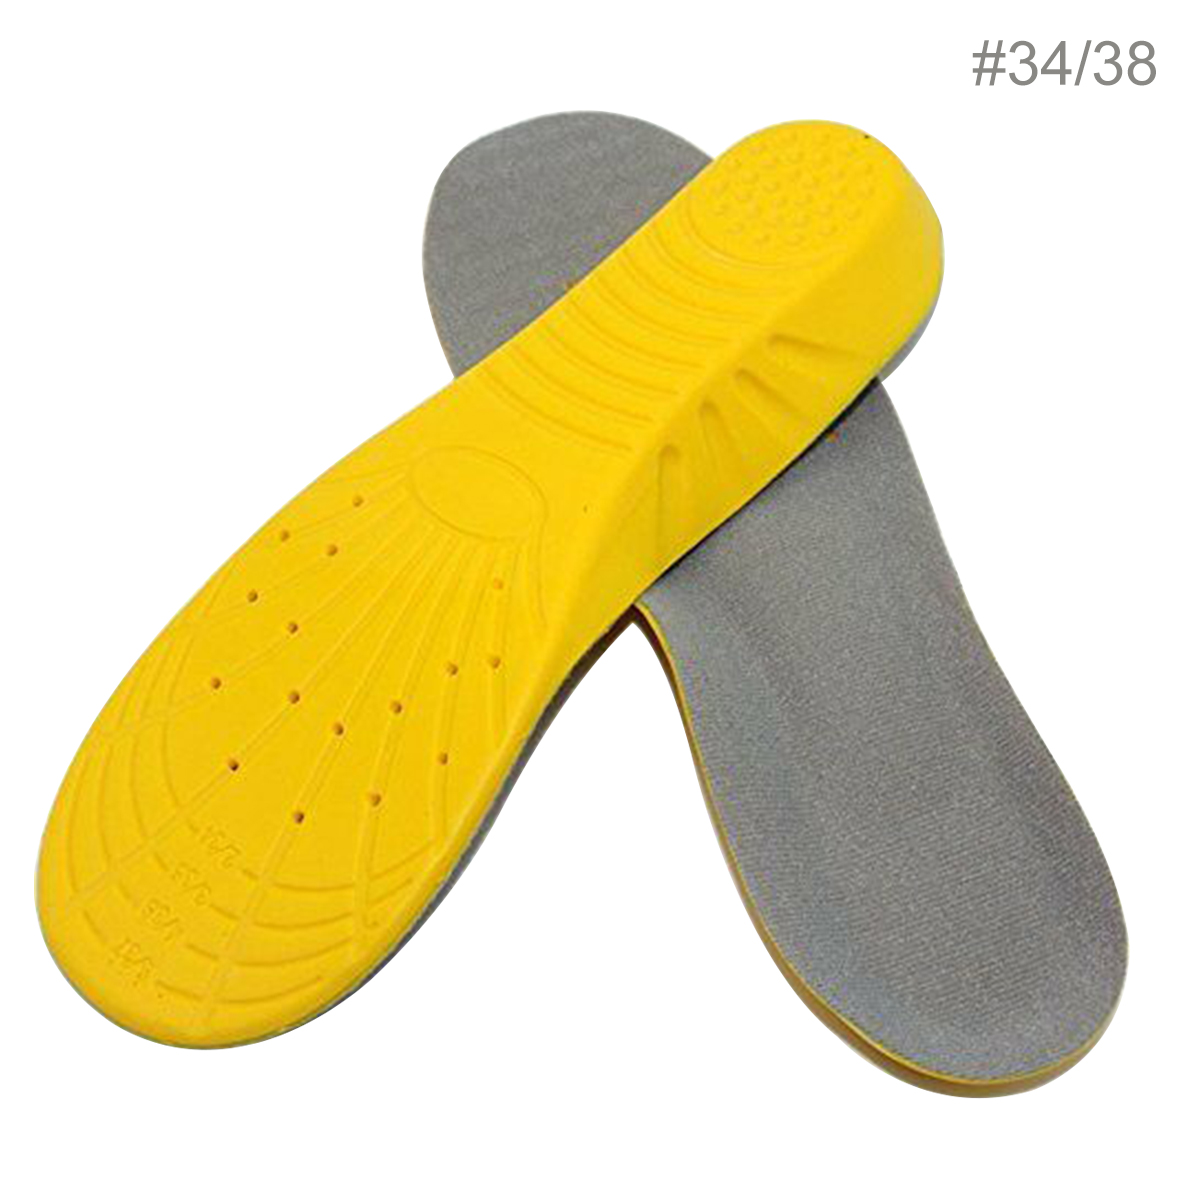 1 Pair Stretch Breathable Deodorant Running Cushion Insoles For Feet Man Women Insoles For Shoes Sole Orthopedic Pad